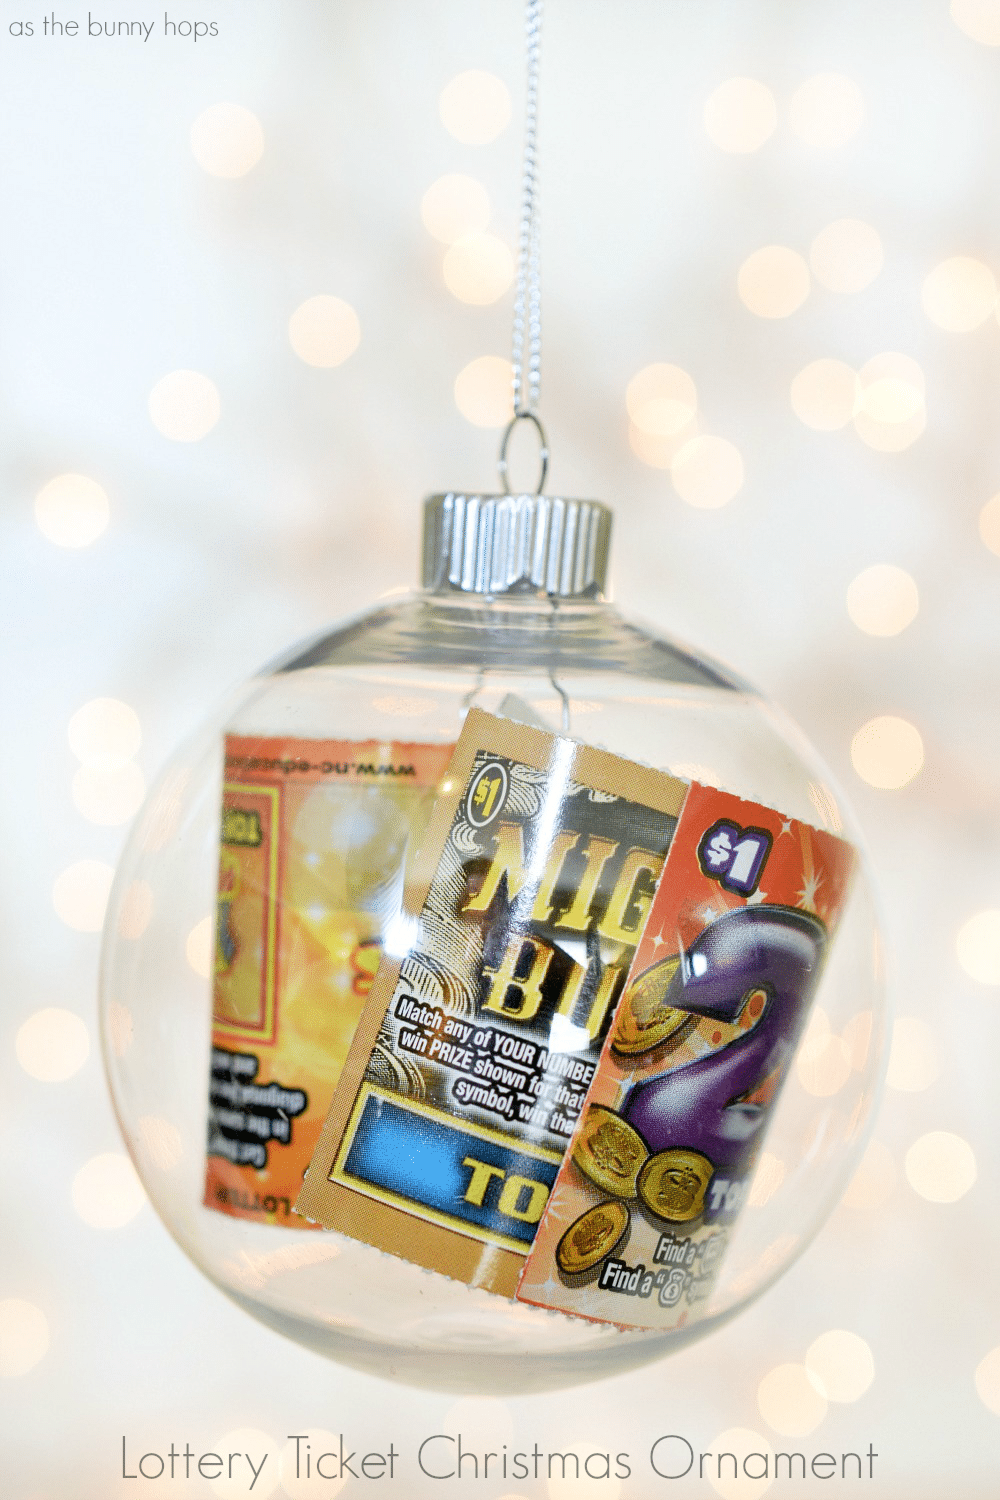 Lottery Ticket Christmas Ornament As The Bunny Hops